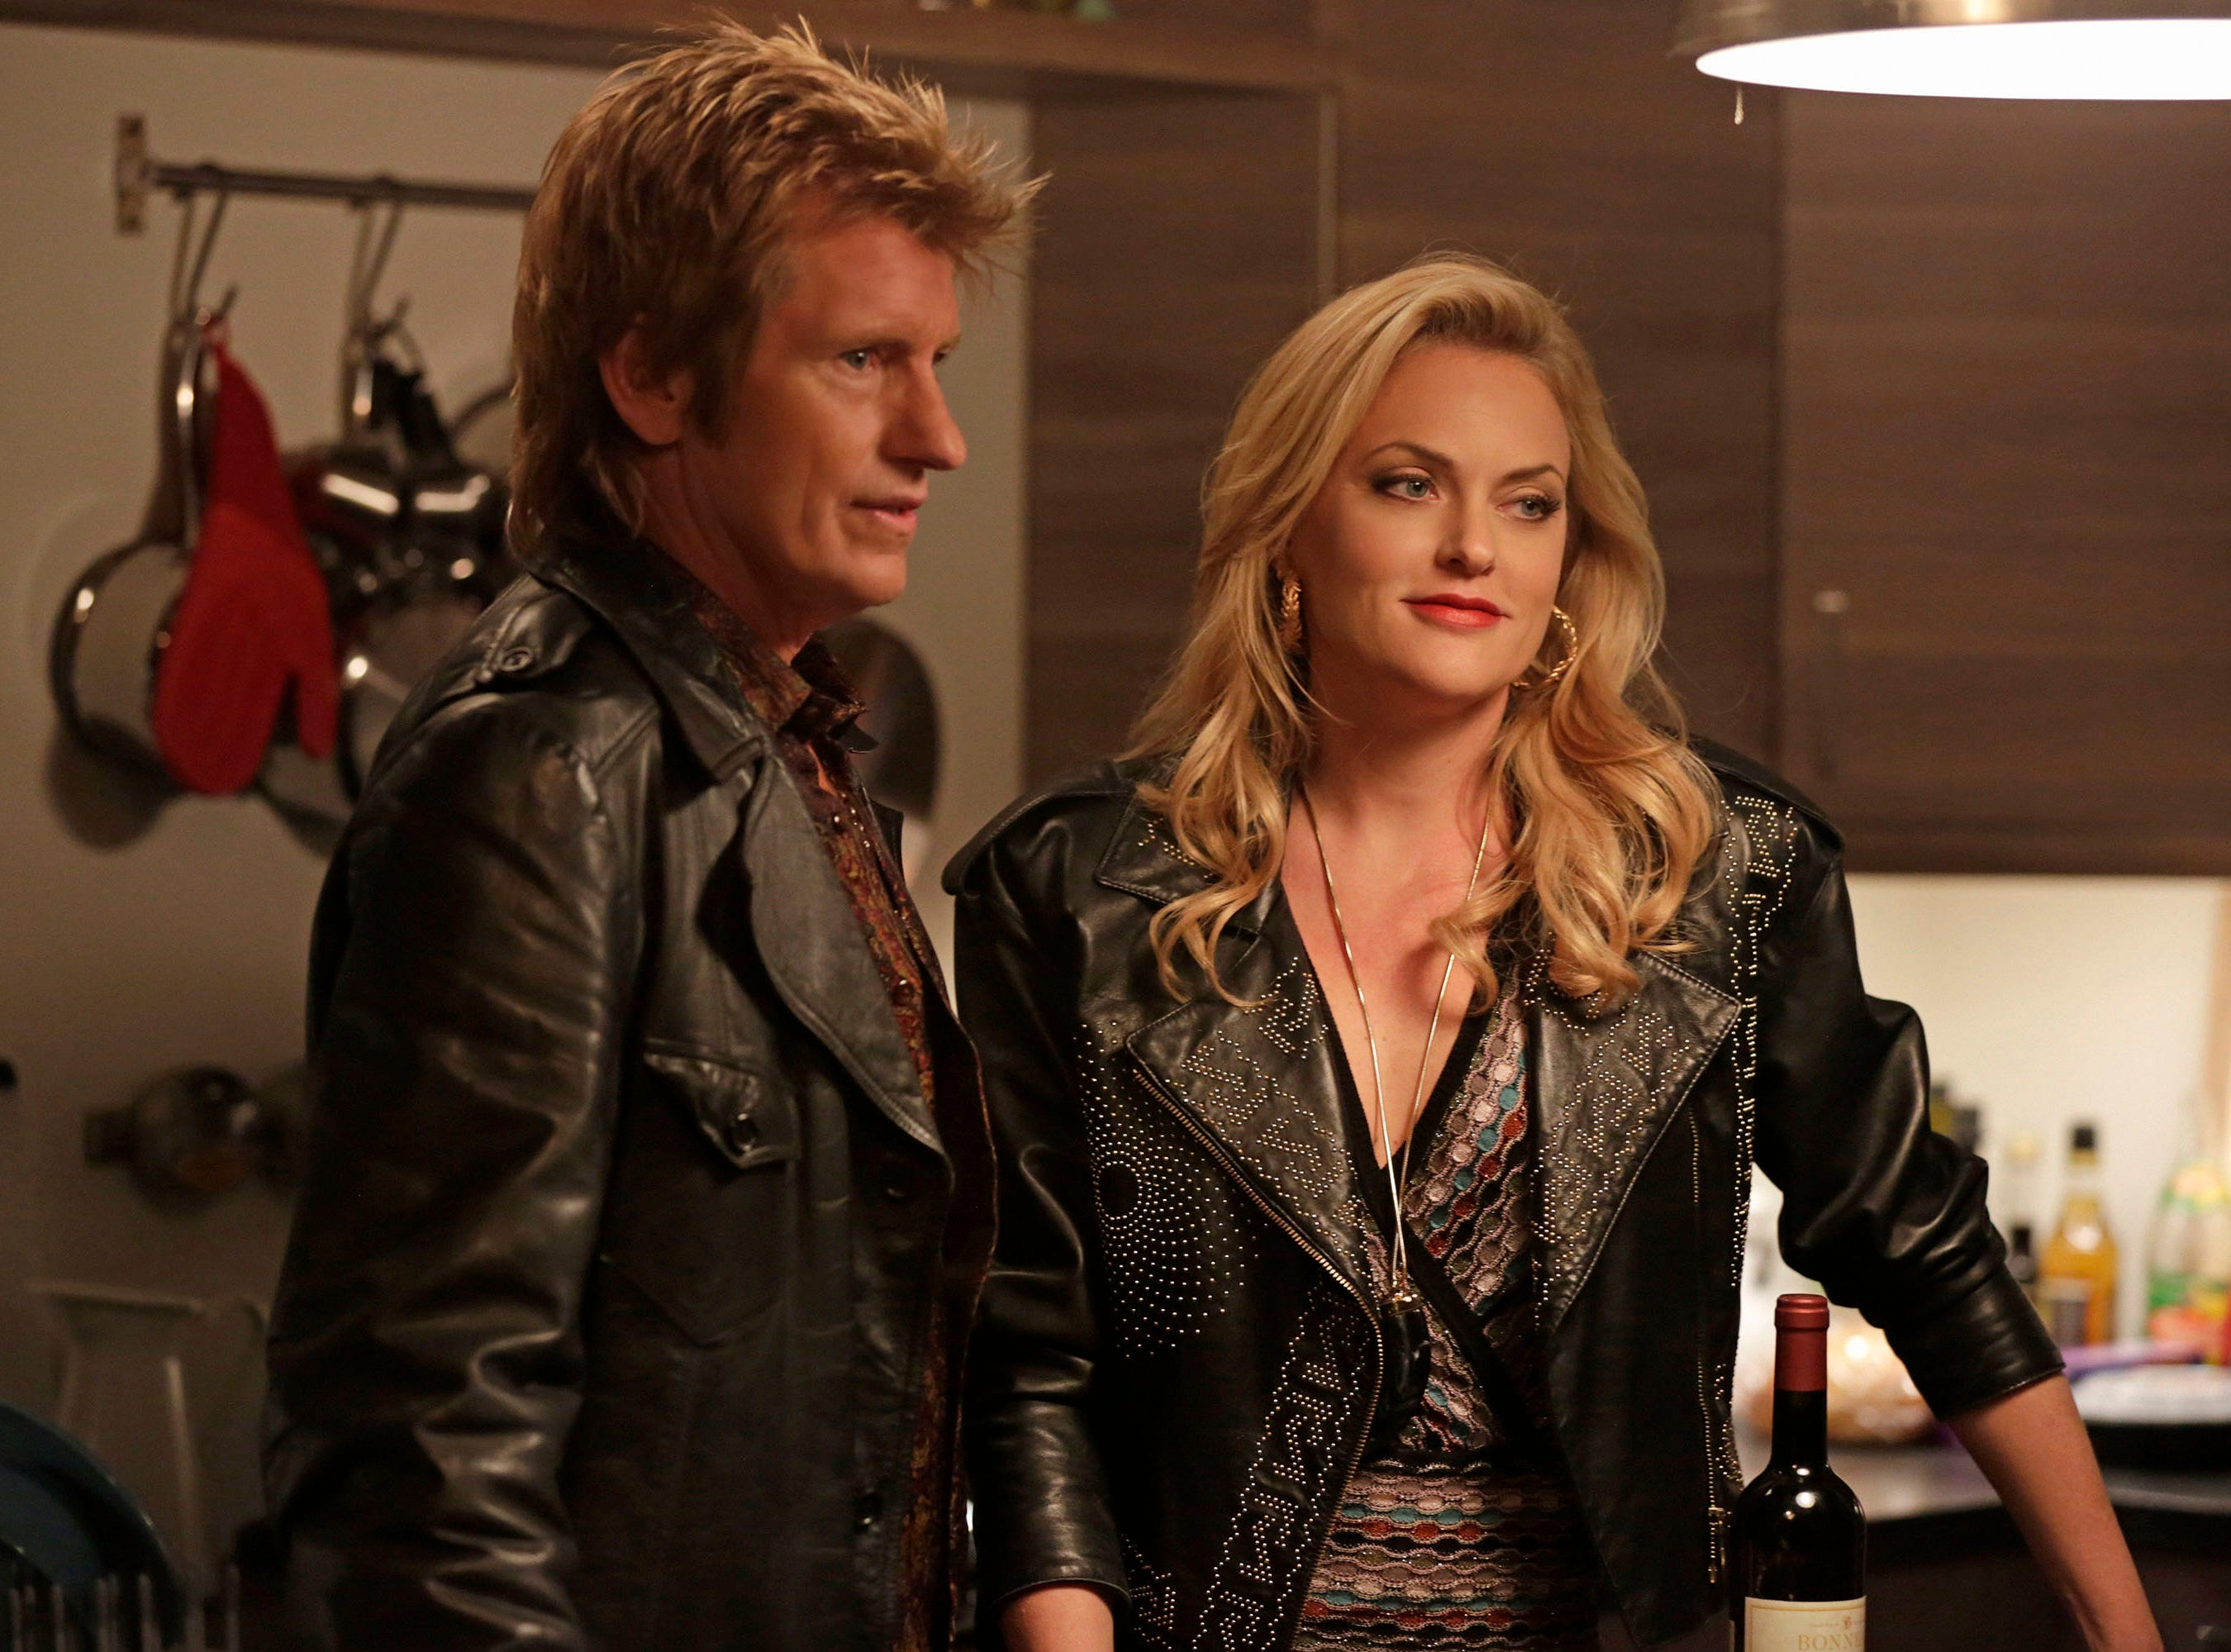 Pictured: (l-r) Denis Leary as Johnny Rock, Elaine Hendrix as Ava.